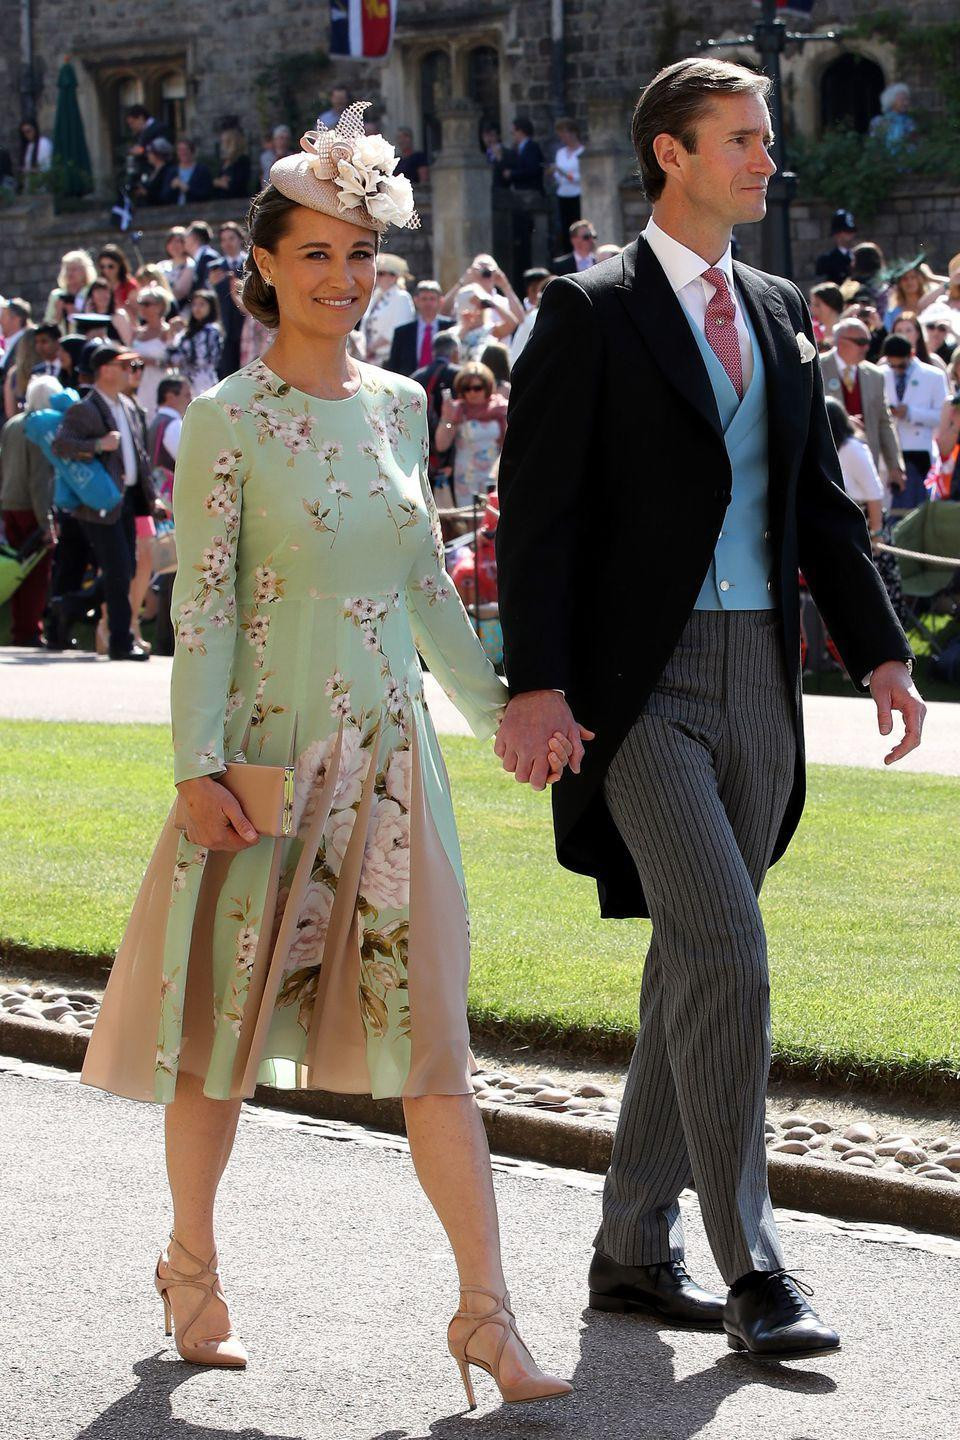 """<p>Arriving at the Royal Wedding of Price Harry and Meghan Markle in a floral <a rel=""""nofollow noopener"""" href=""""https://thefoldlondon.com/product/hepburn-dress-bloom-print-silk/?"""" target=""""_blank"""" data-ylk=""""slk:The Fold"""" class=""""link rapid-noclick-resp"""">The Fold</a> dress and nude heels. </p>"""